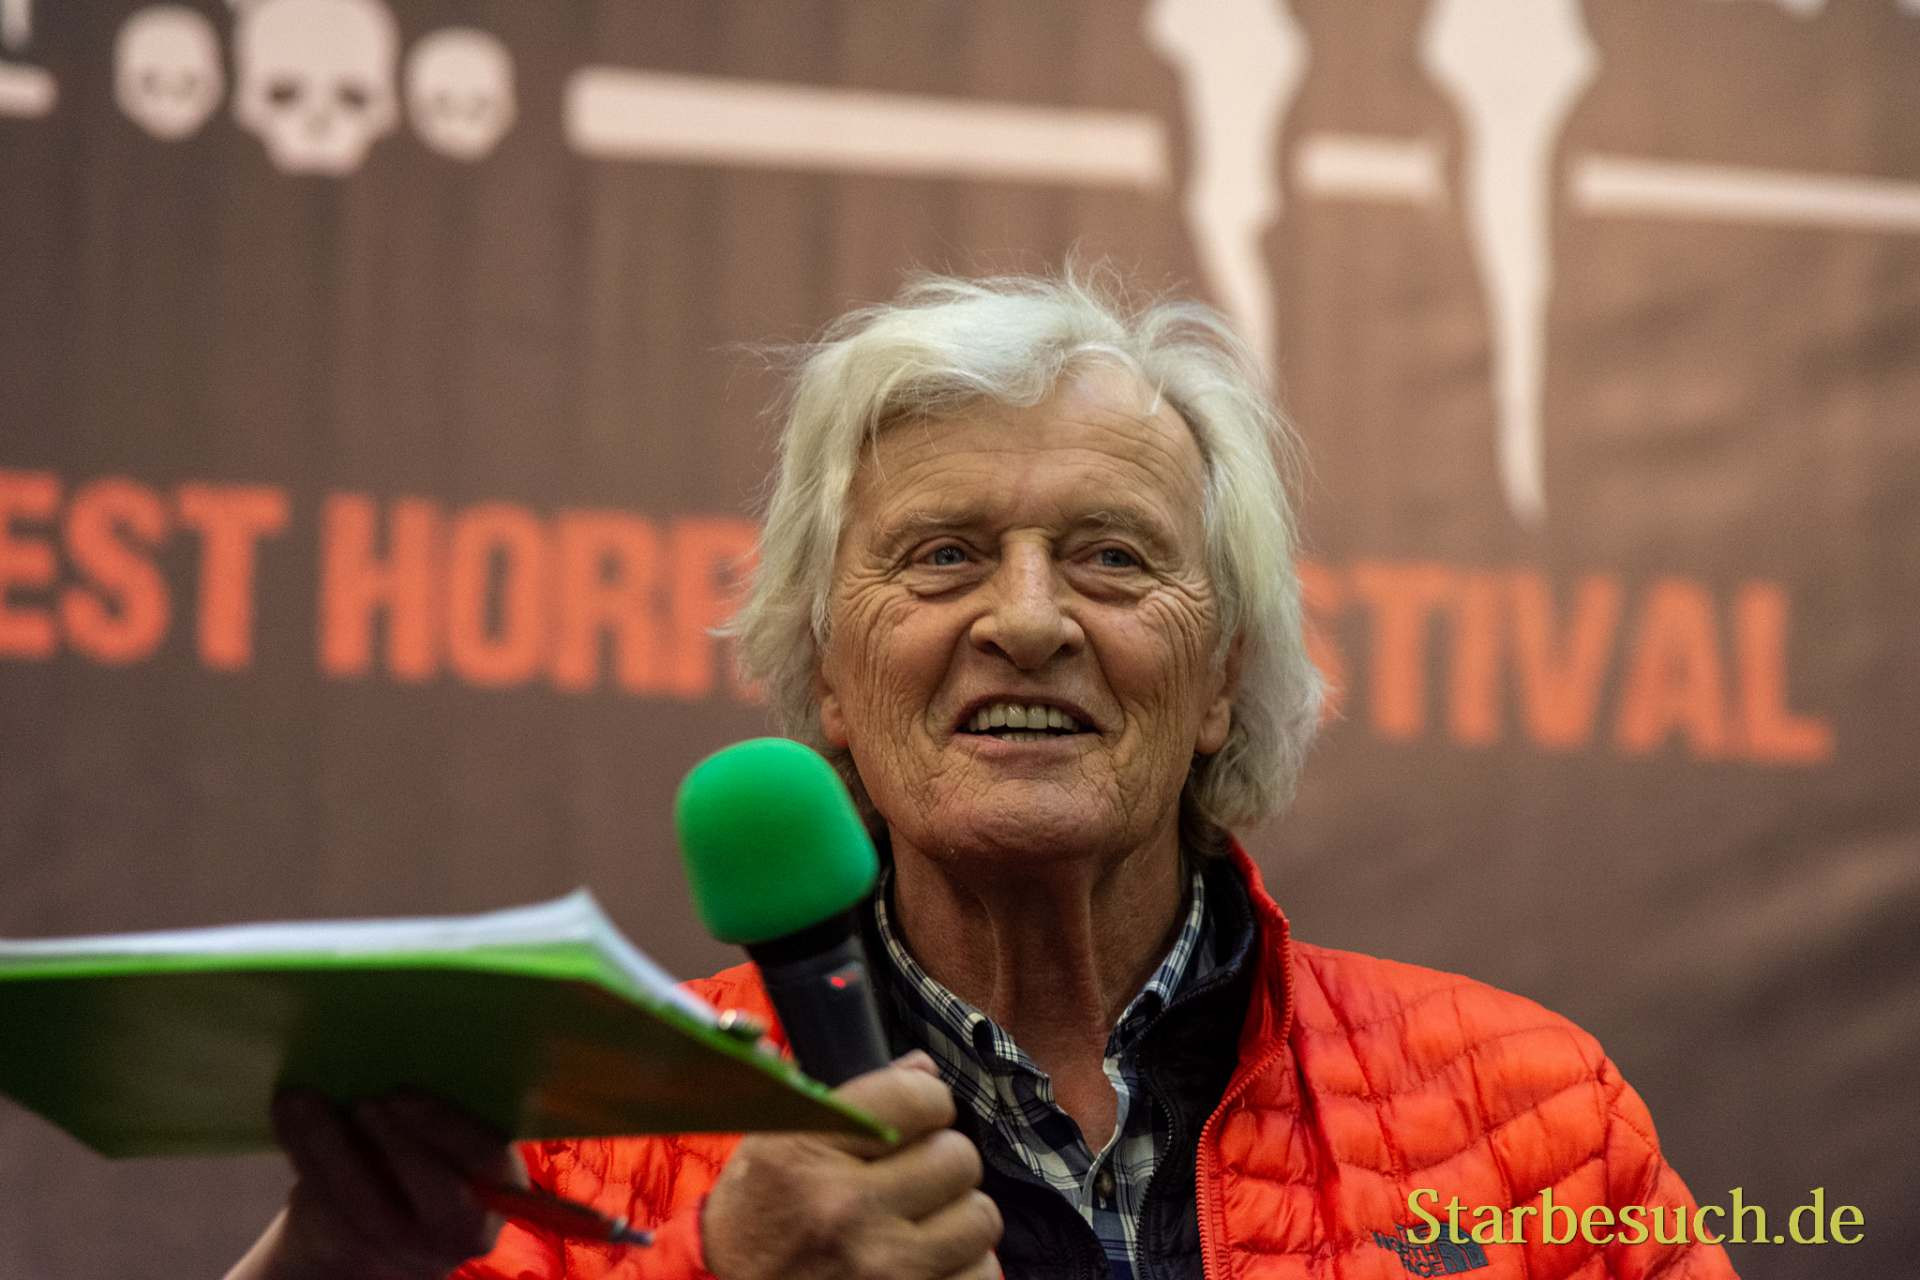 DORTMUND, GERMANY - November 3rd 2018: Rutger Hauer at Weekend of Hell 2018